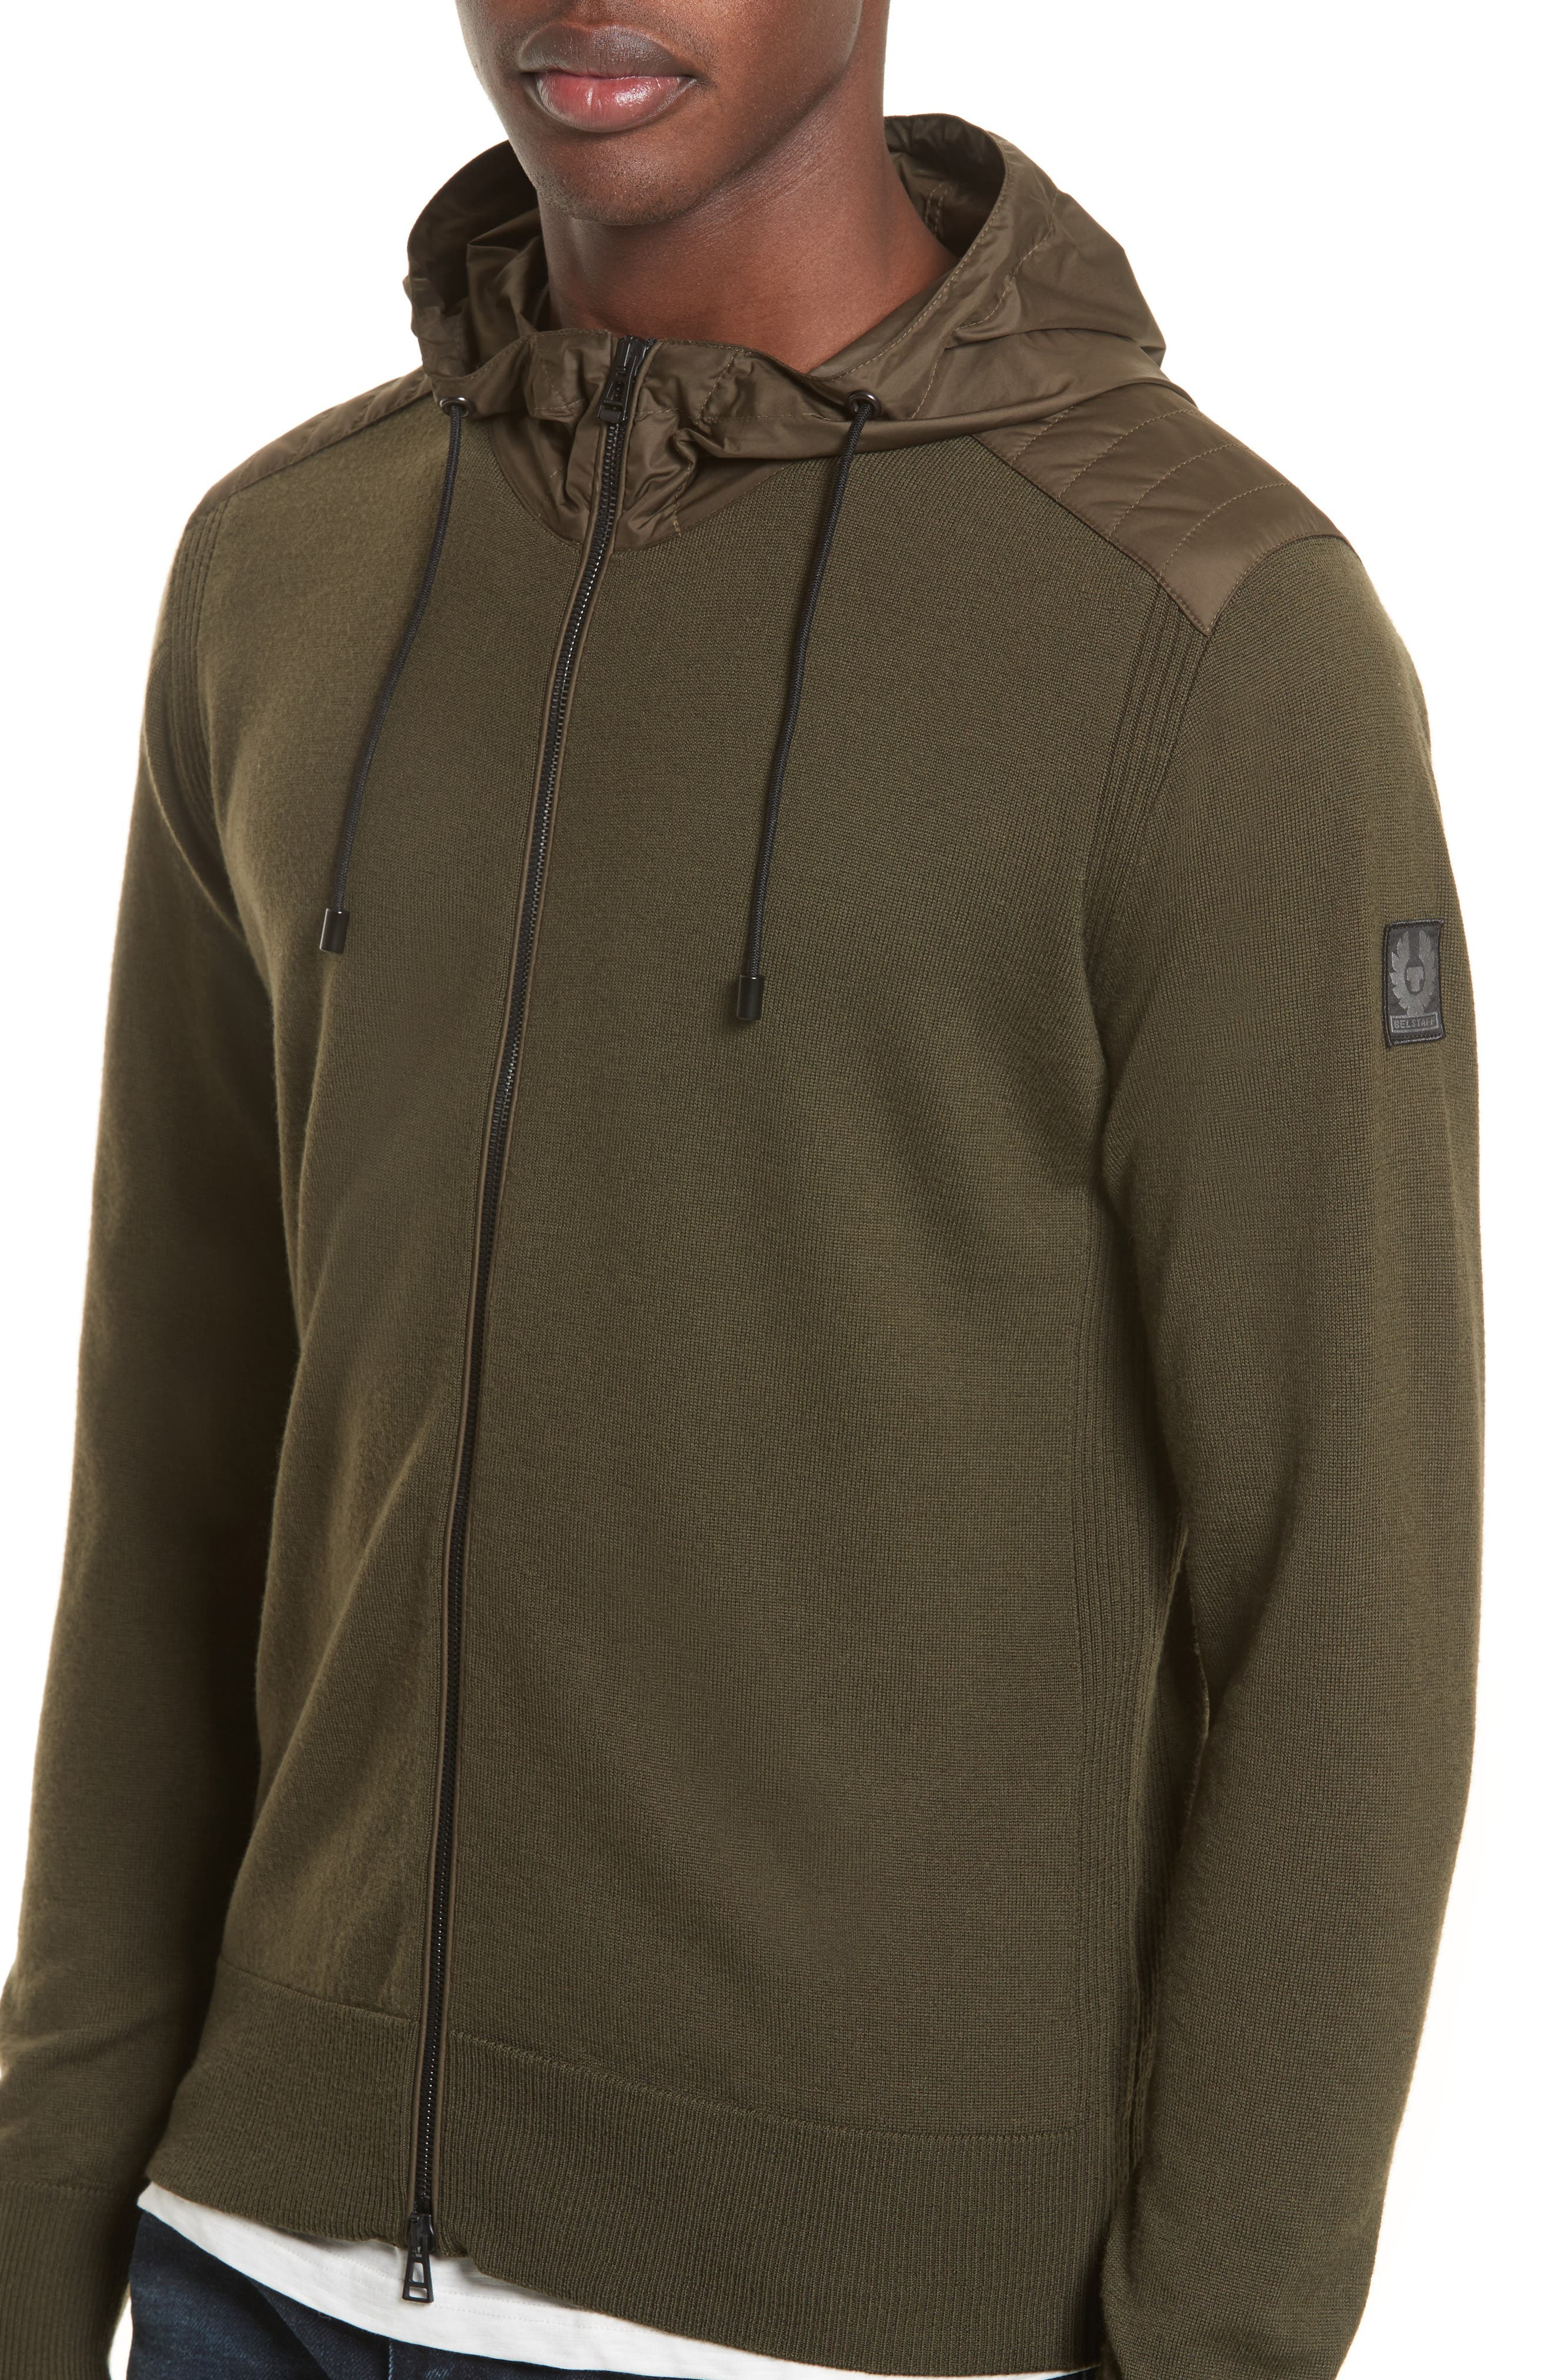 Aldington Mixed Media Full Zip Hoodie,                             Alternate thumbnail 4, color,                             Pale Military Green